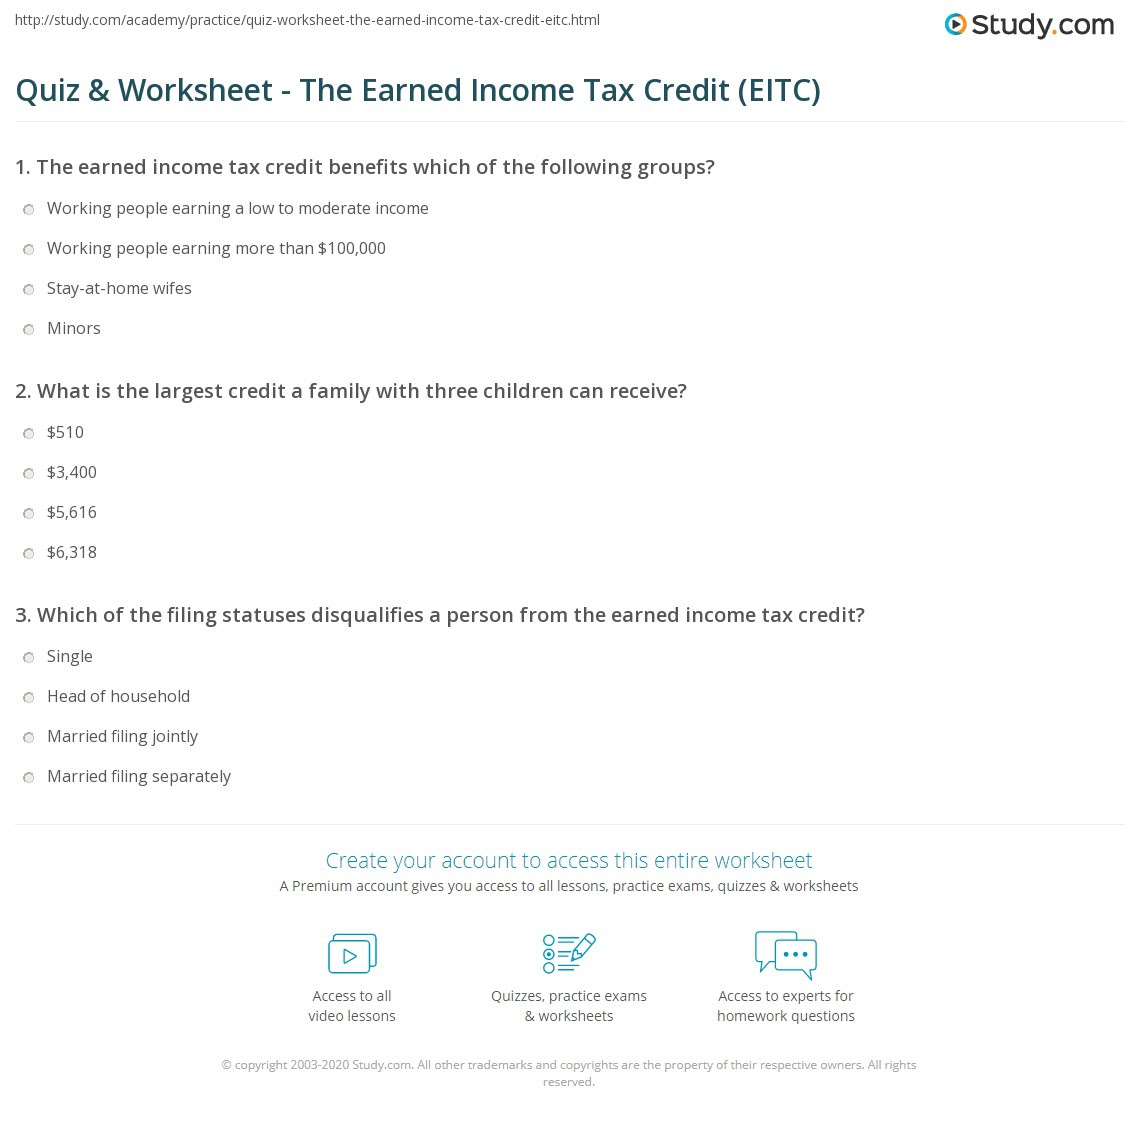 Quiz  Worksheet  The Earned Income Tax Credit EITC  Study.com